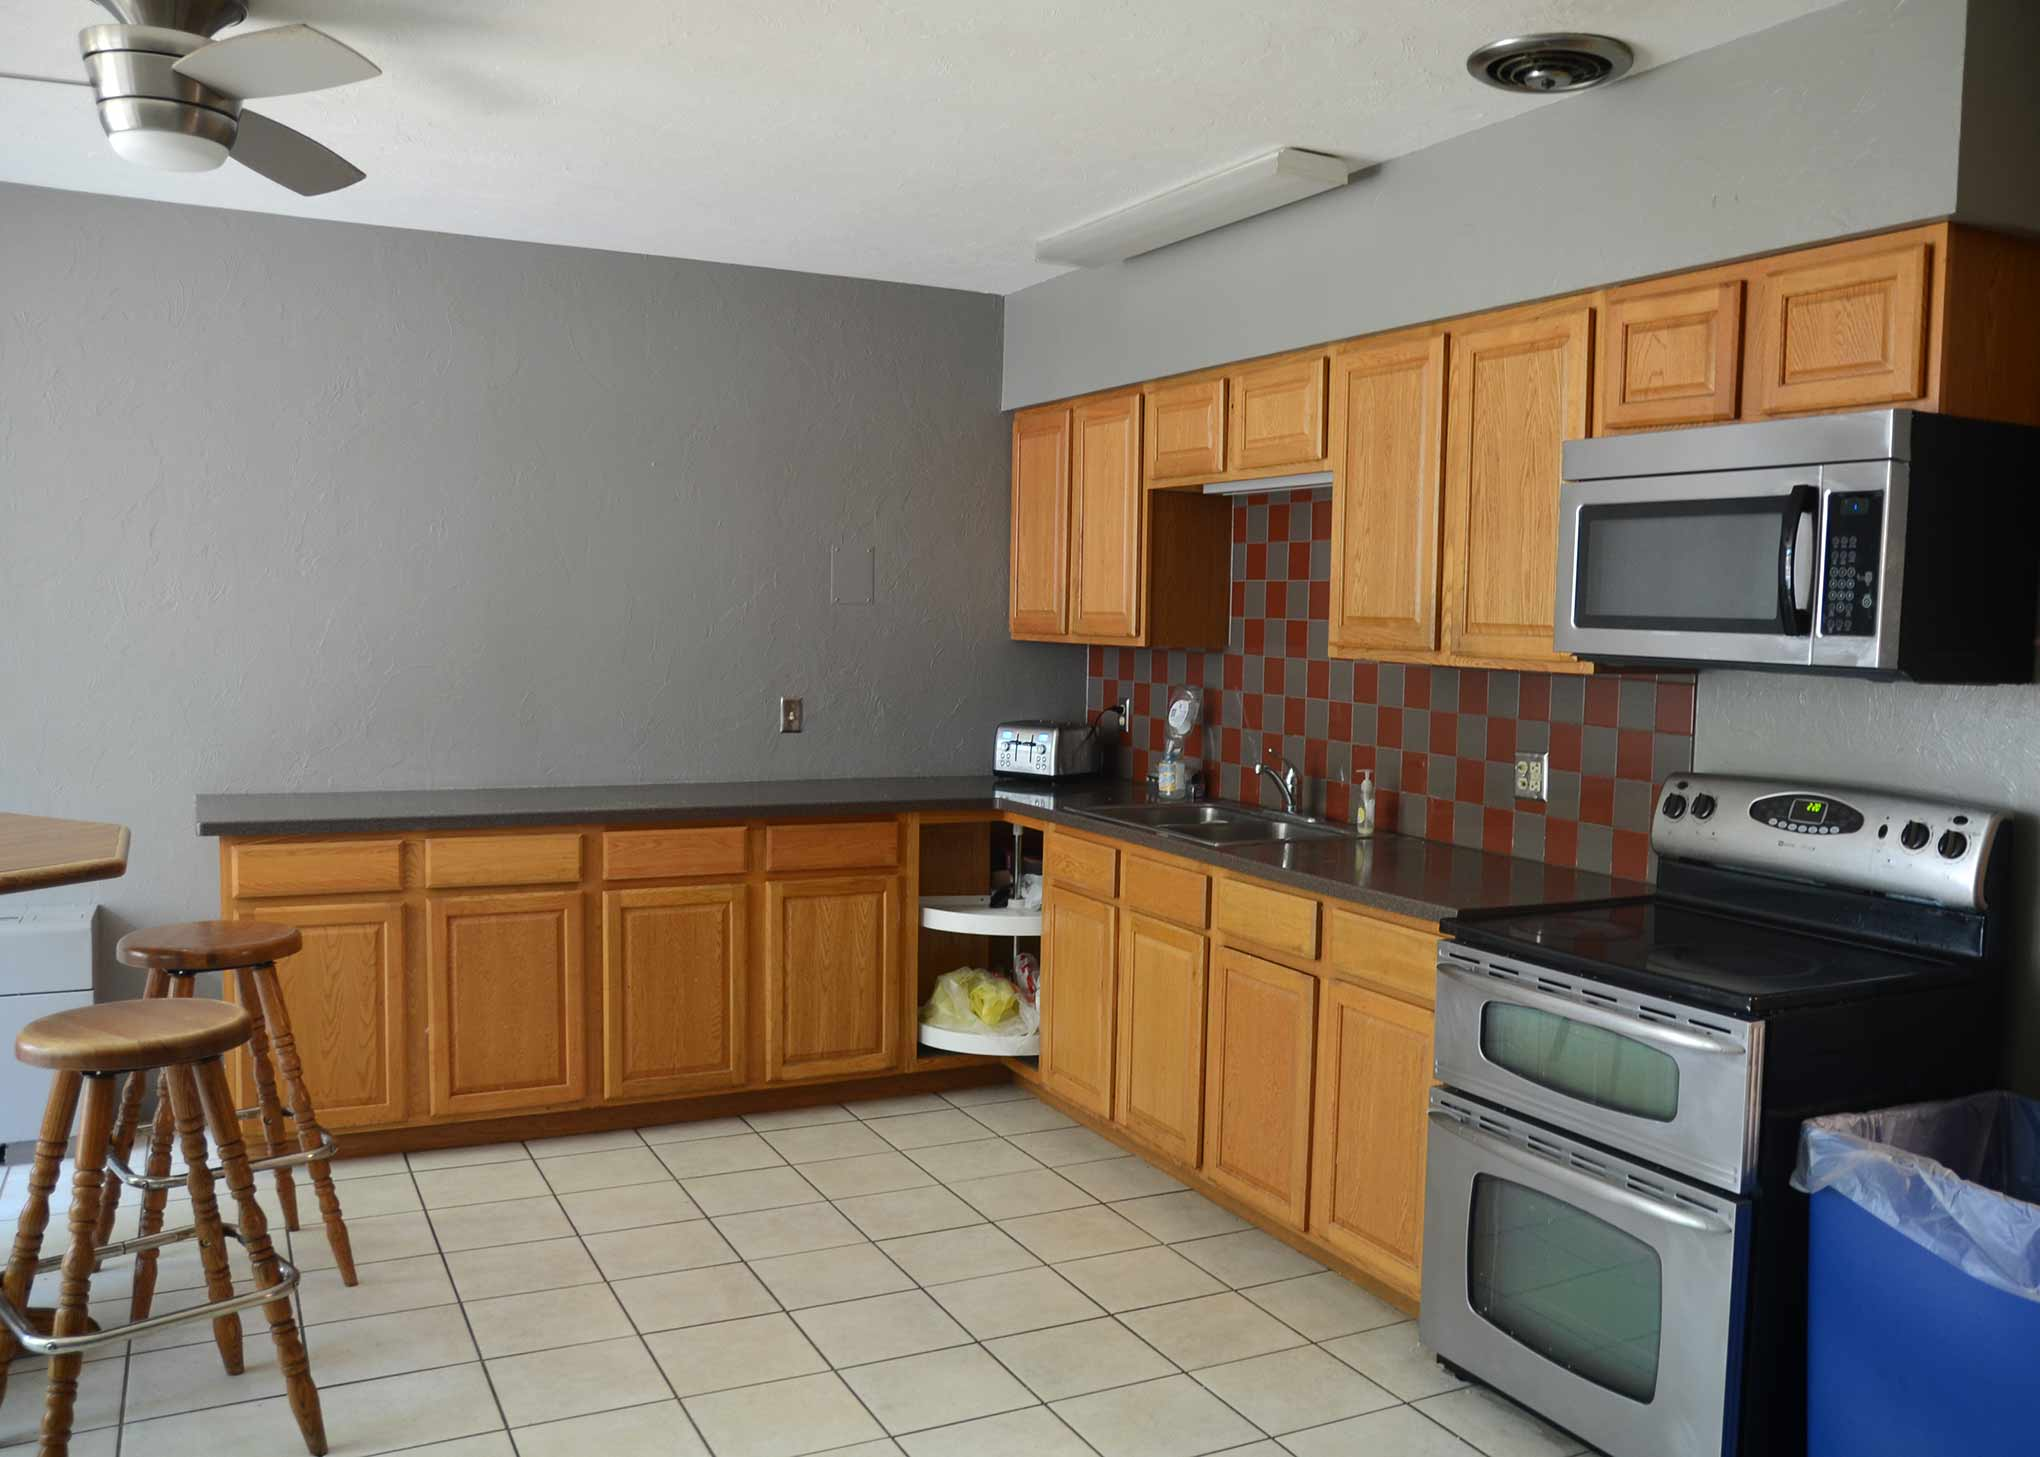 Rees Hall kitchen. Includes microwave, stove, refrigerator, sink, counter-space, cabinets, and tables.